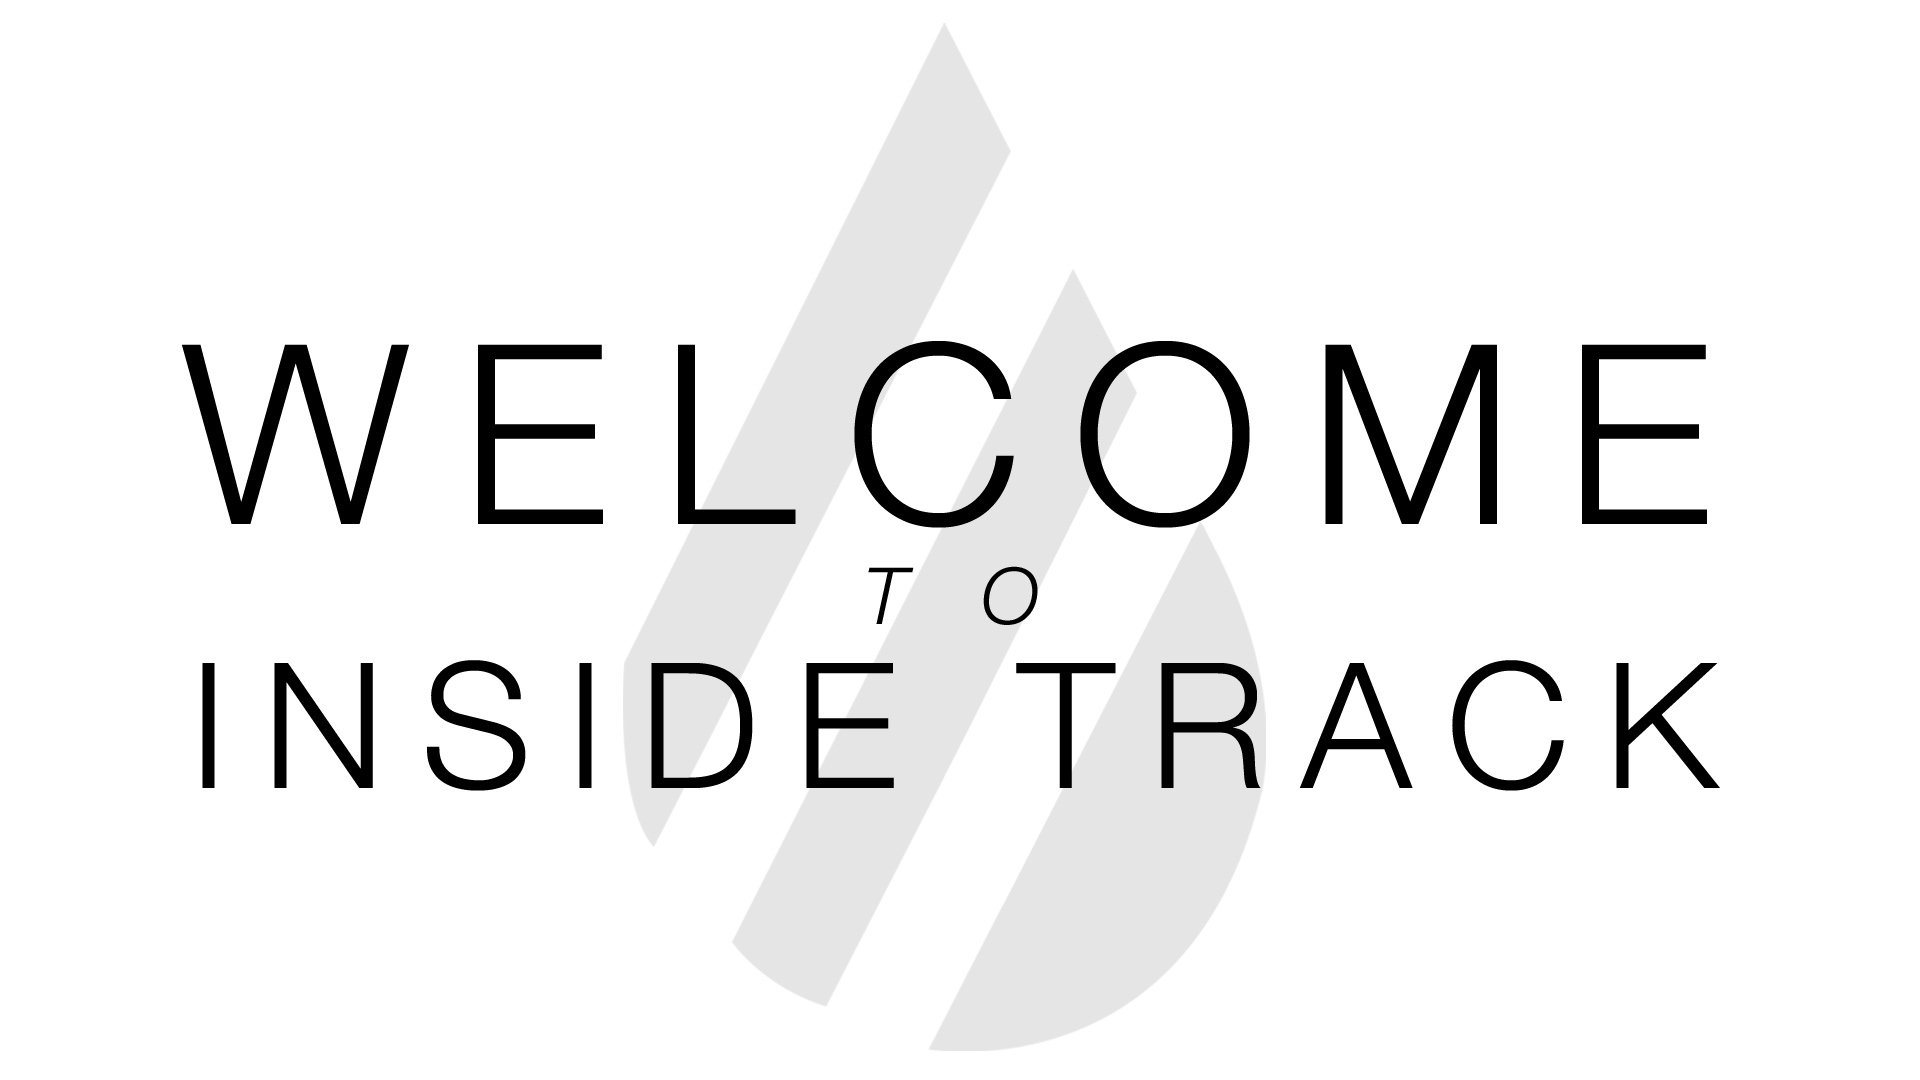 Welcometoinsidetrack 03